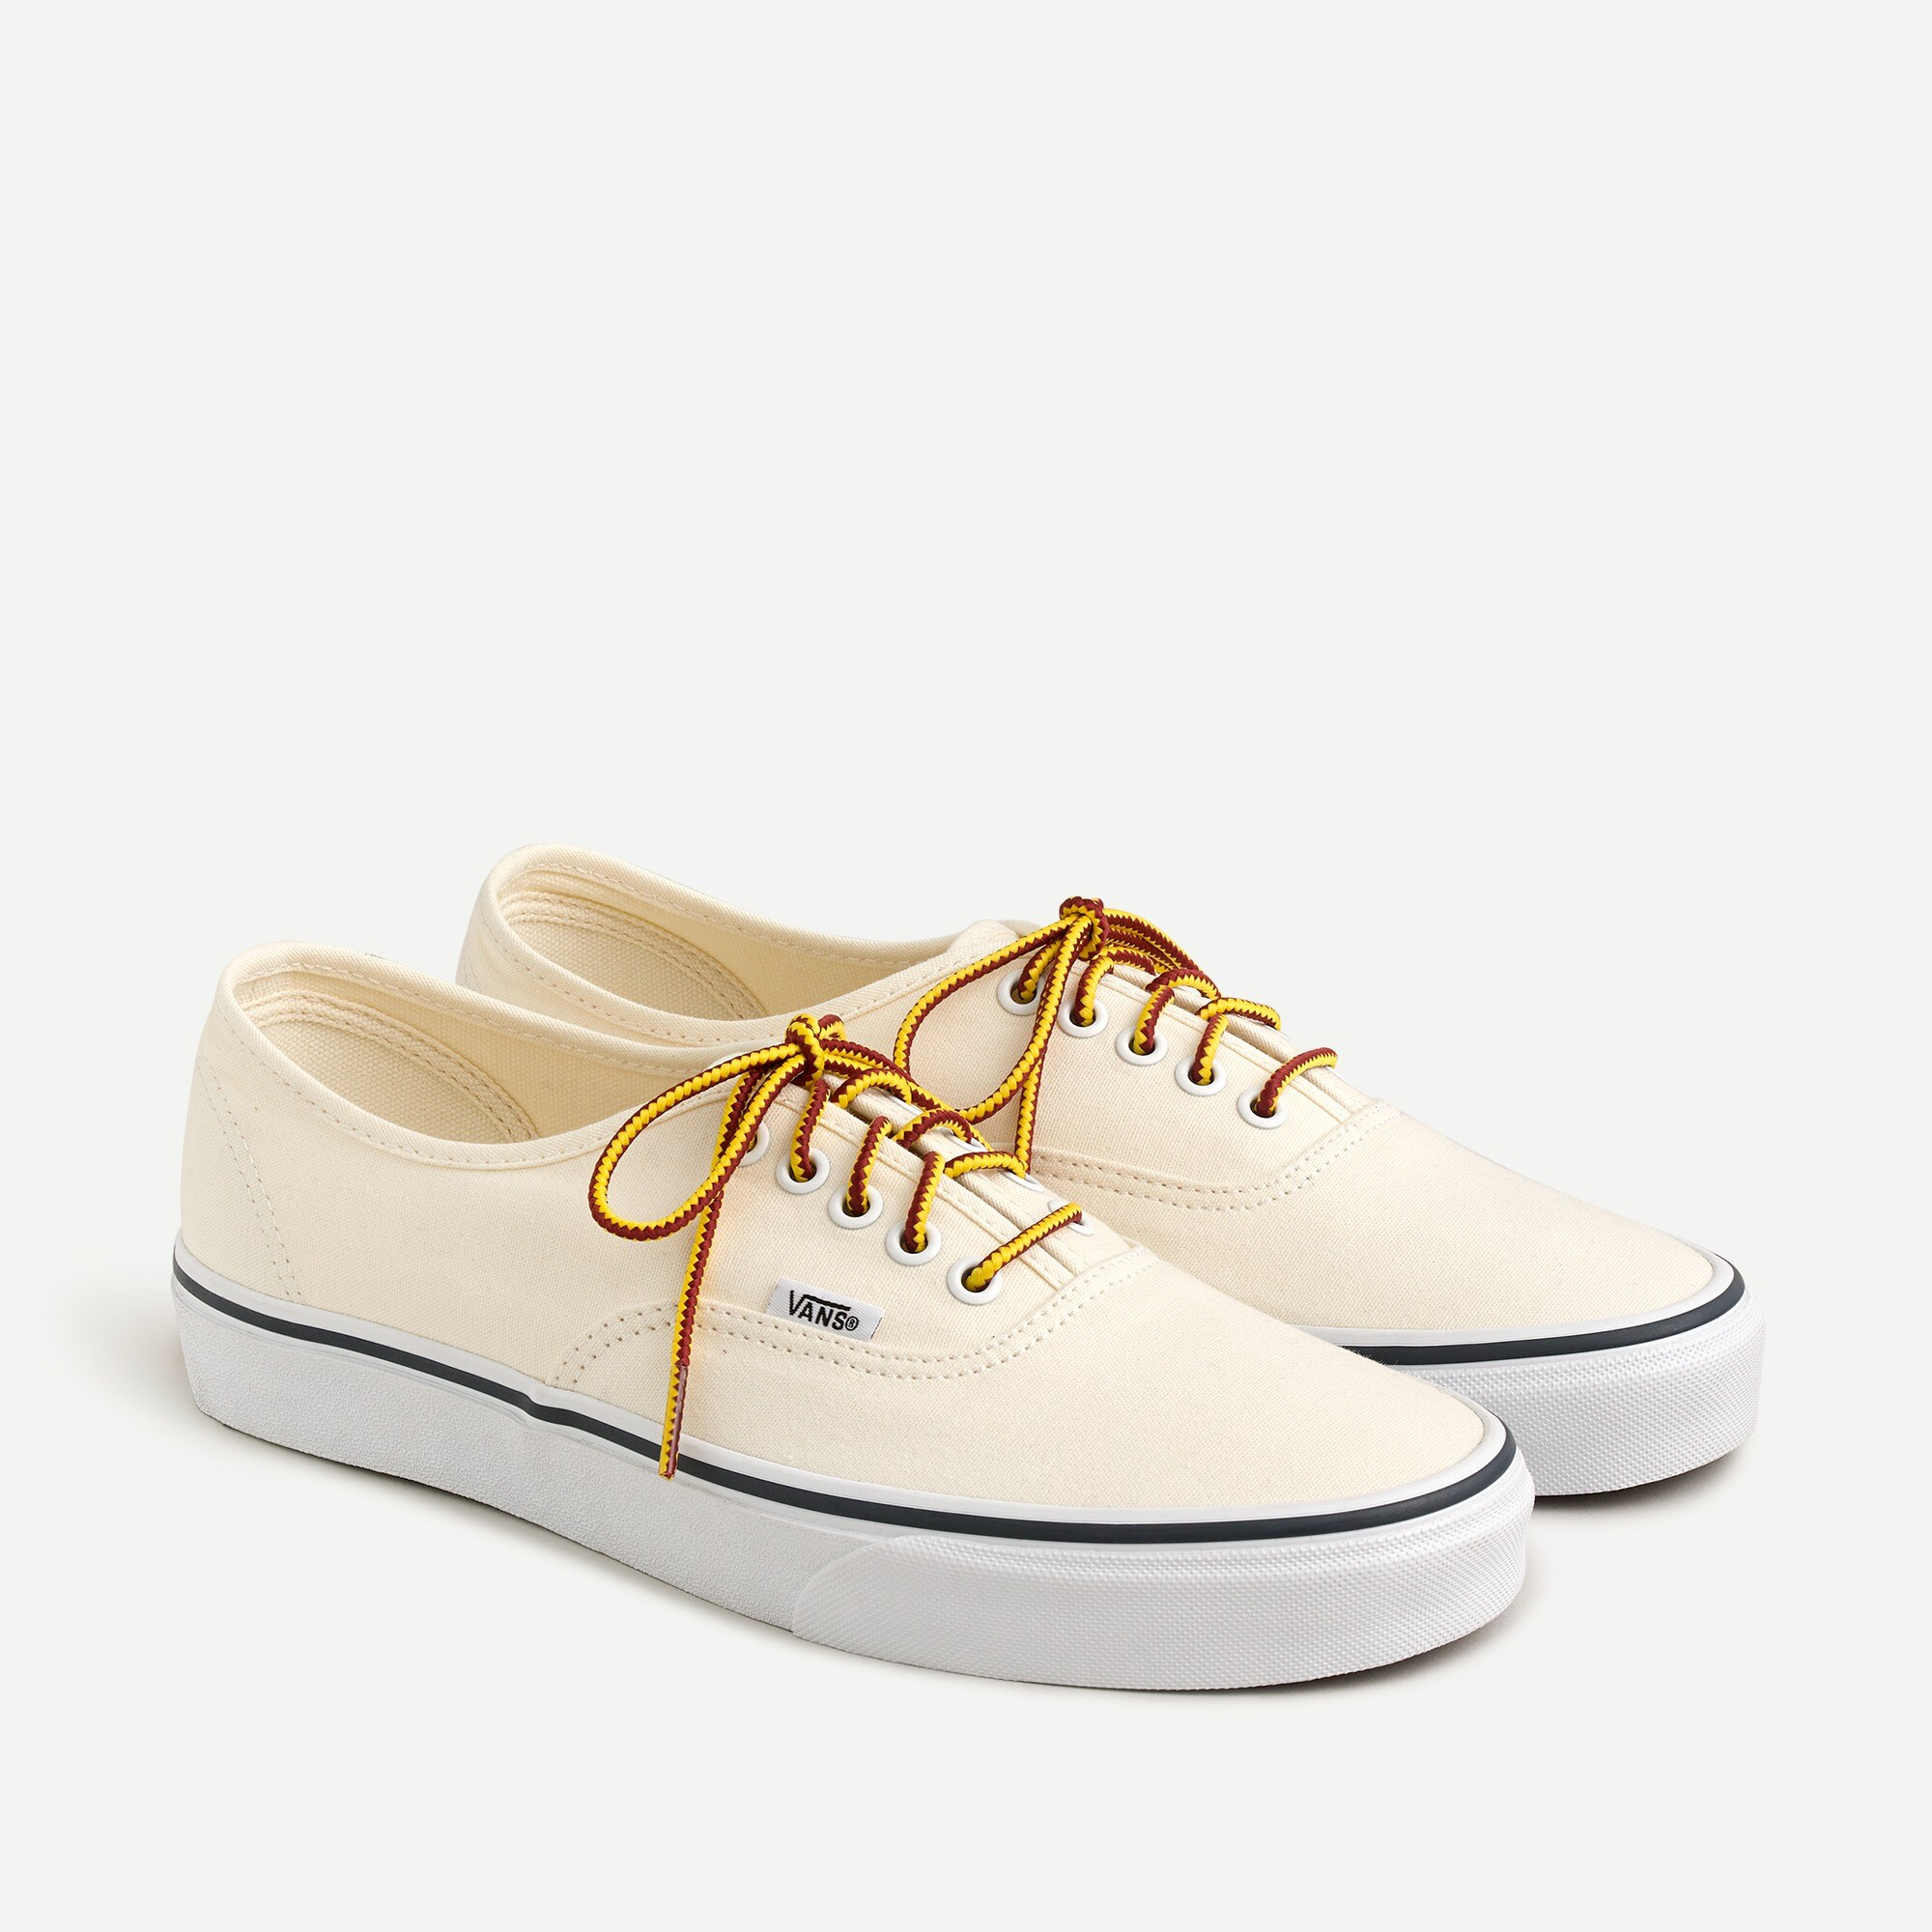 mens Vans® for J.Crew canvas authentic sneakers